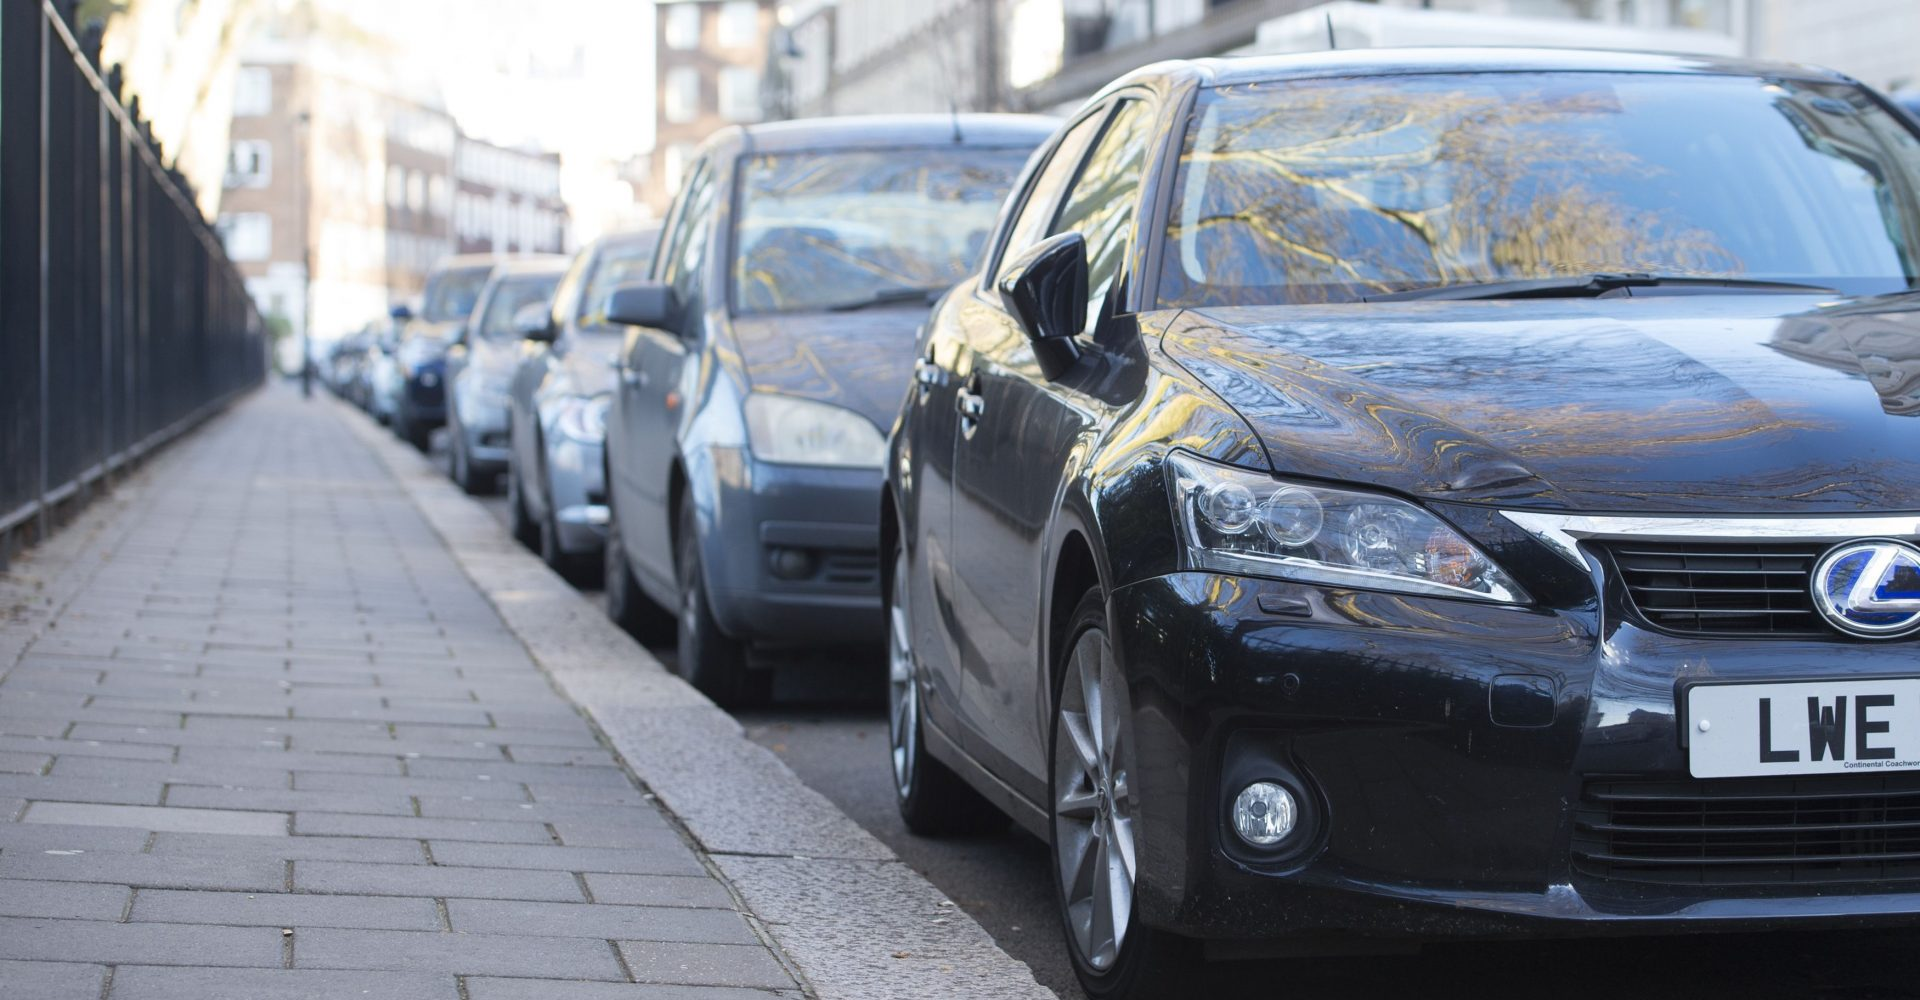 Angered by bad parking? It could be wasting thousands of spaces, too